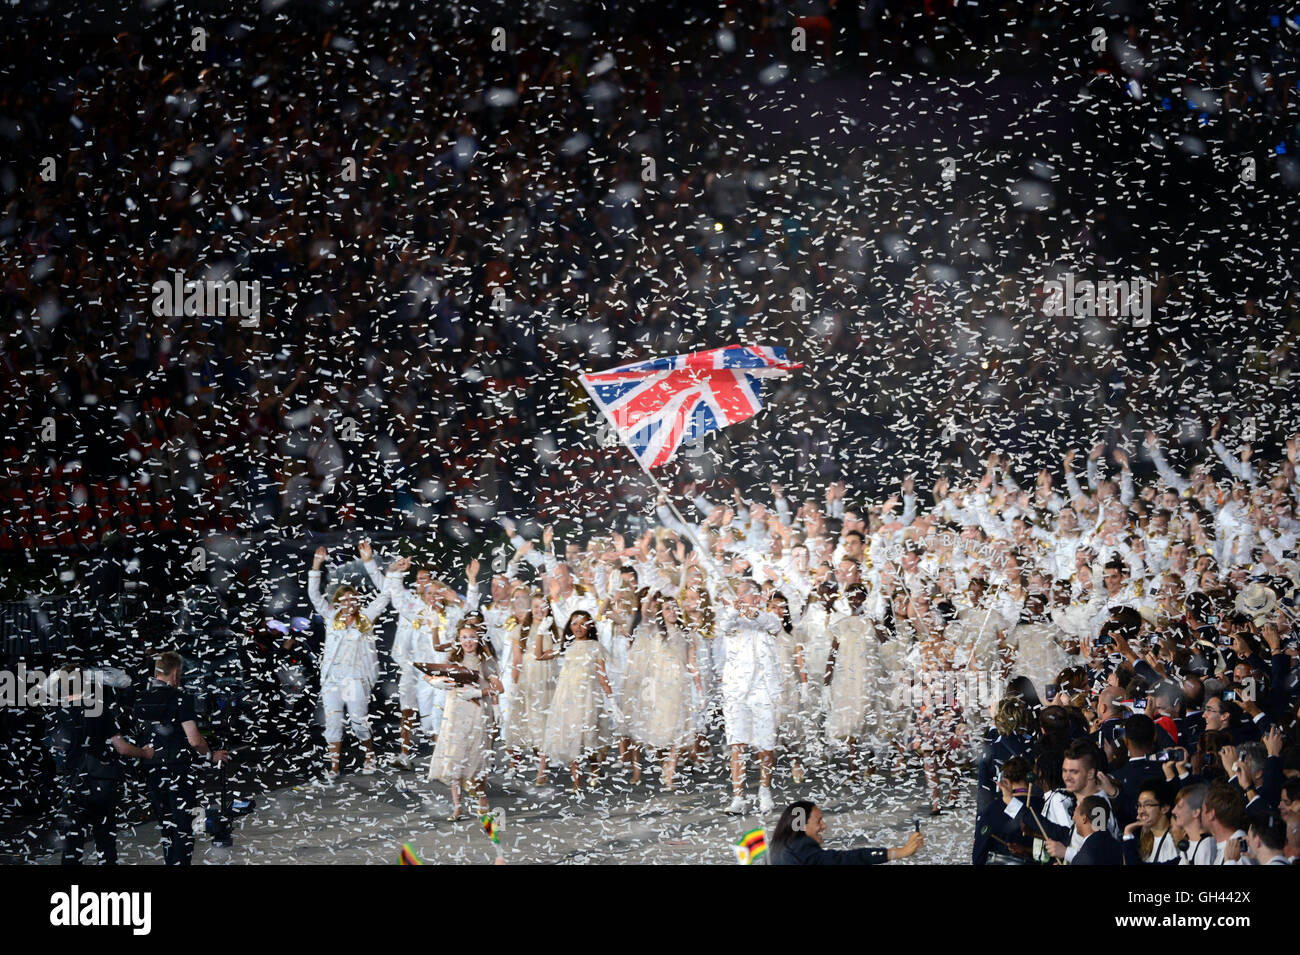 Great Britain team entering the Olympic Stadium during the Opening Ceremonies of the London Olympics. - Stock Image